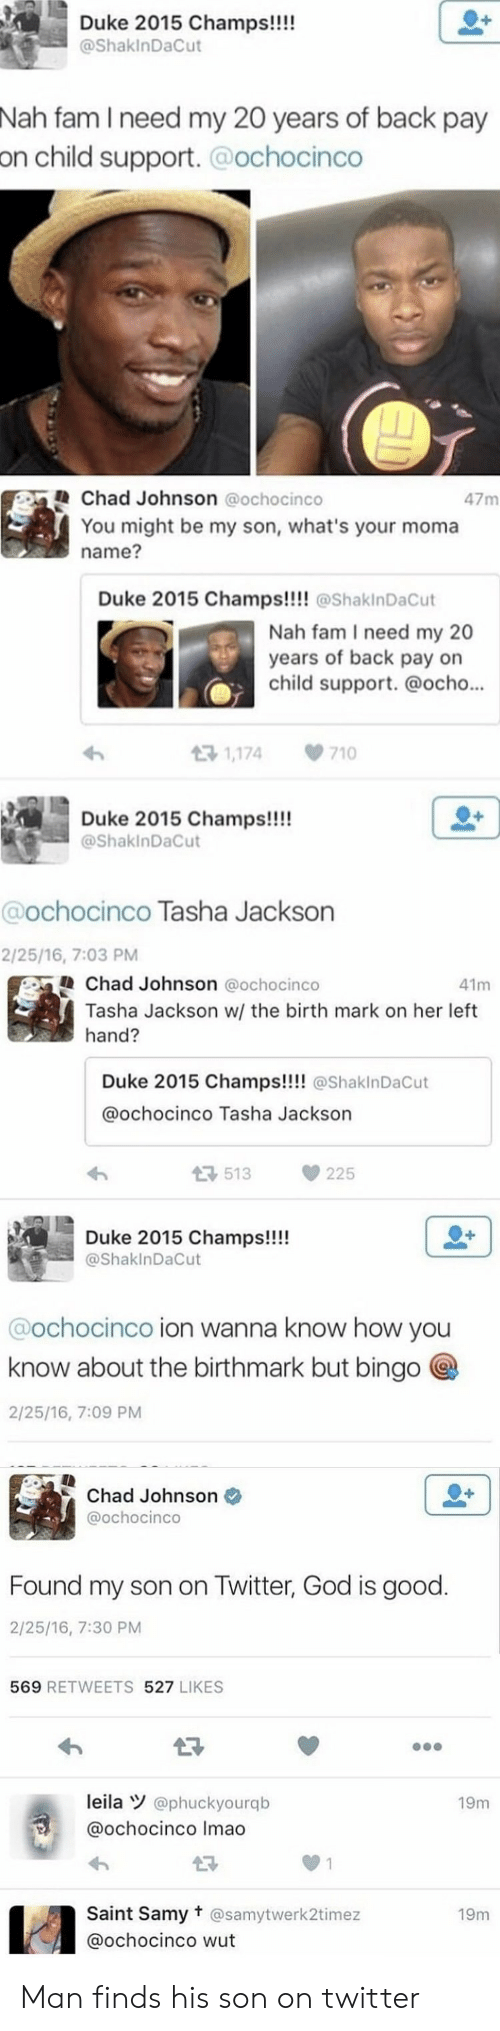 my 20: Duke 2015 Champs!!!!  @ShakInDaCut  Nah fam I need my 20 years of back pay  on  child support.@ochocinco   Chad Johnson @ochocinco  47m  You might be my son, what's your moma  name?  Duke 2015 Champs!!!@ShakinDaCut  Nah fam I need my 20  years of back pay on  child support. @ocho..  1,174  710  Duke 2015 Champs!!!  @ShakinDaCut  @ochocinco Tasha Jackson  2/25/16, 7:03 PM   Chad Johnson @ochocinco  41m  Tasha Jackson w/ the birth mark on her left  hand?  Duke 2015 Champs!!!! @ShaklnDaCut  @ochocinco Tasha Jackson  3513225  Duke 2015 Champs!!!  @ShaklnDaCut  @ochocinco ion wanna know how you  know about the birthmark but bingo  2/25/16, 7:09 PM   Chad Johnson  @ochocinco  Found my son on Twitter, God is good.  2/25/16, 7:30 PM  569 RETWEETS 527 LIKES  leila @phuckyourqb  @ochocinco Imao  19m  27  0 1  Saint Samy t @samytwerk2timez  @ochocinco wut  19m   Man finds his son on twitter